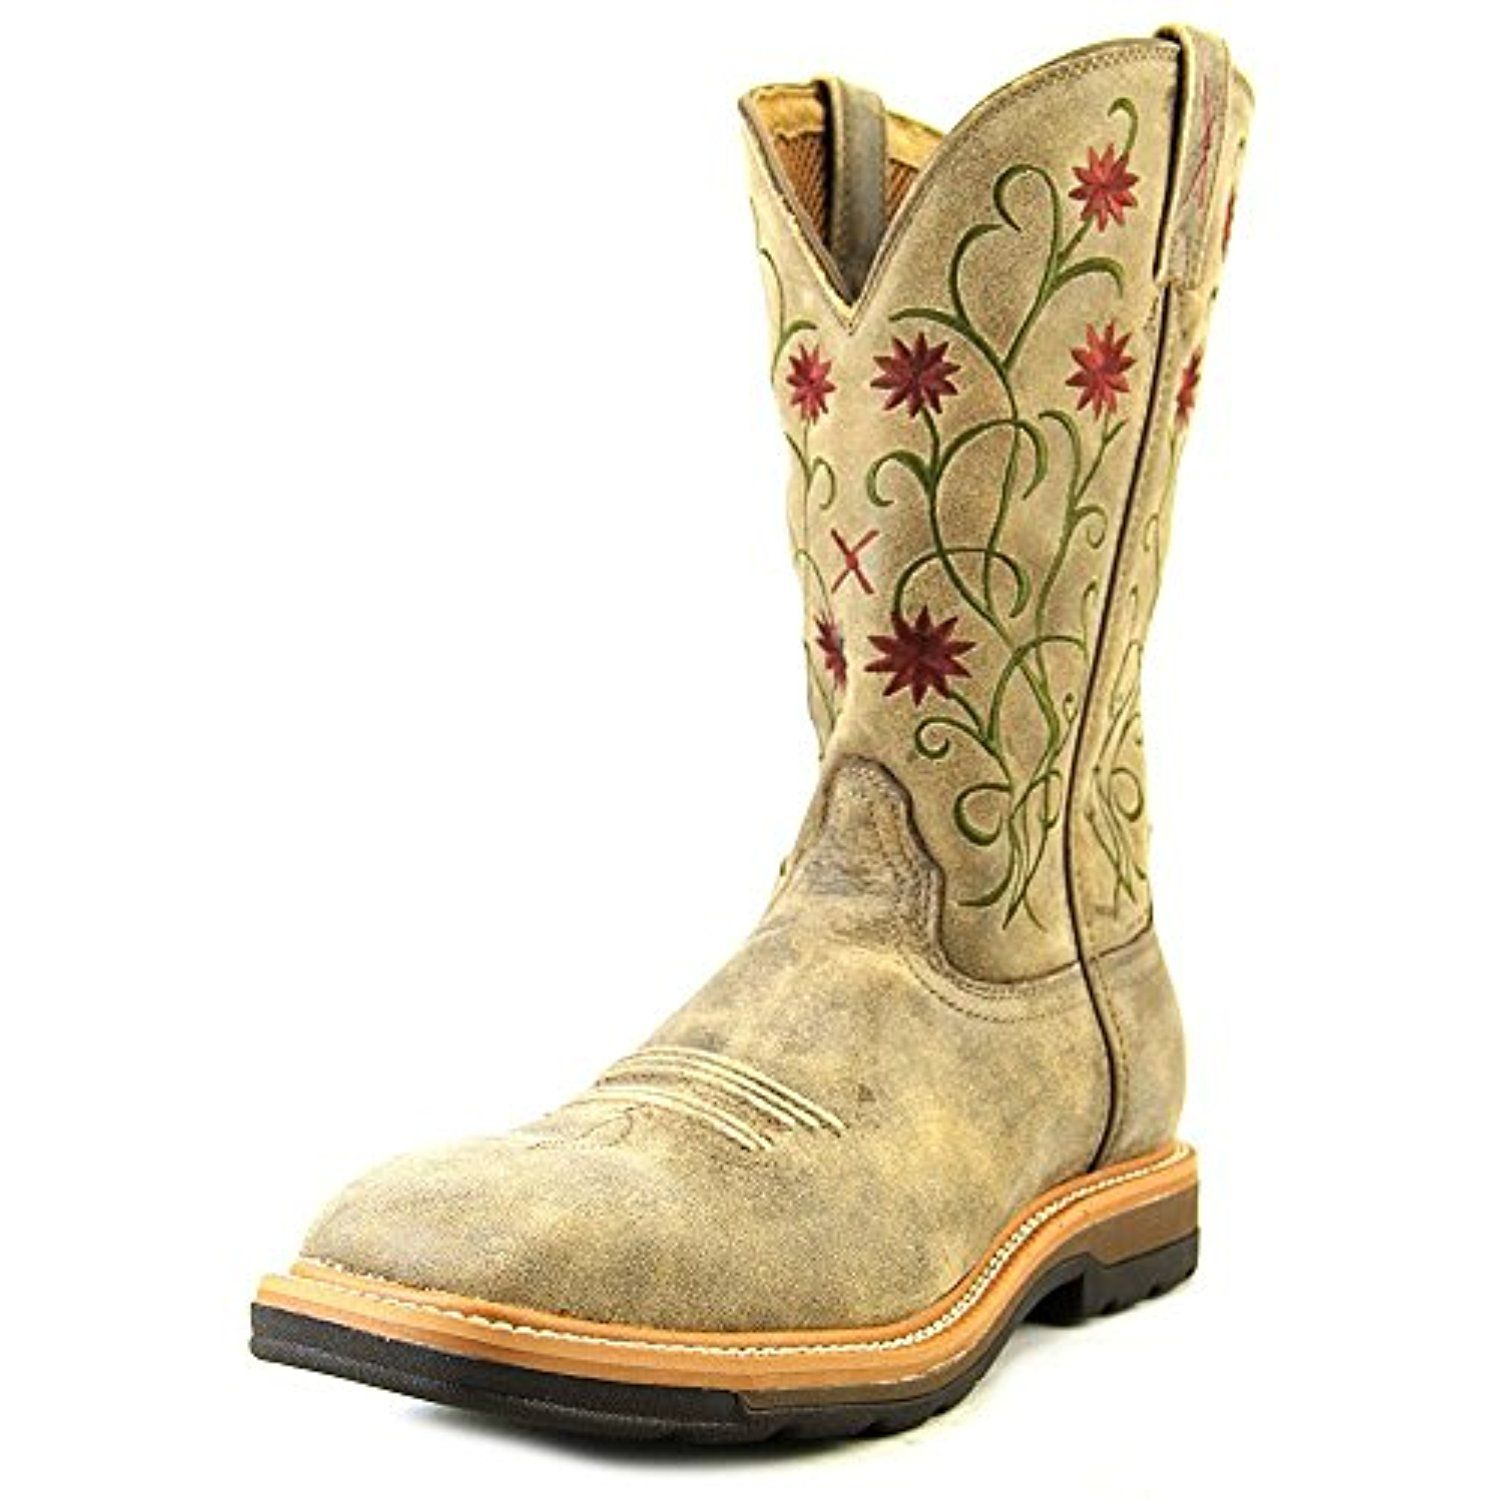 Women's Floral Stitched Roughstock Cowgirl Boot Steel Toe - Wlcs002